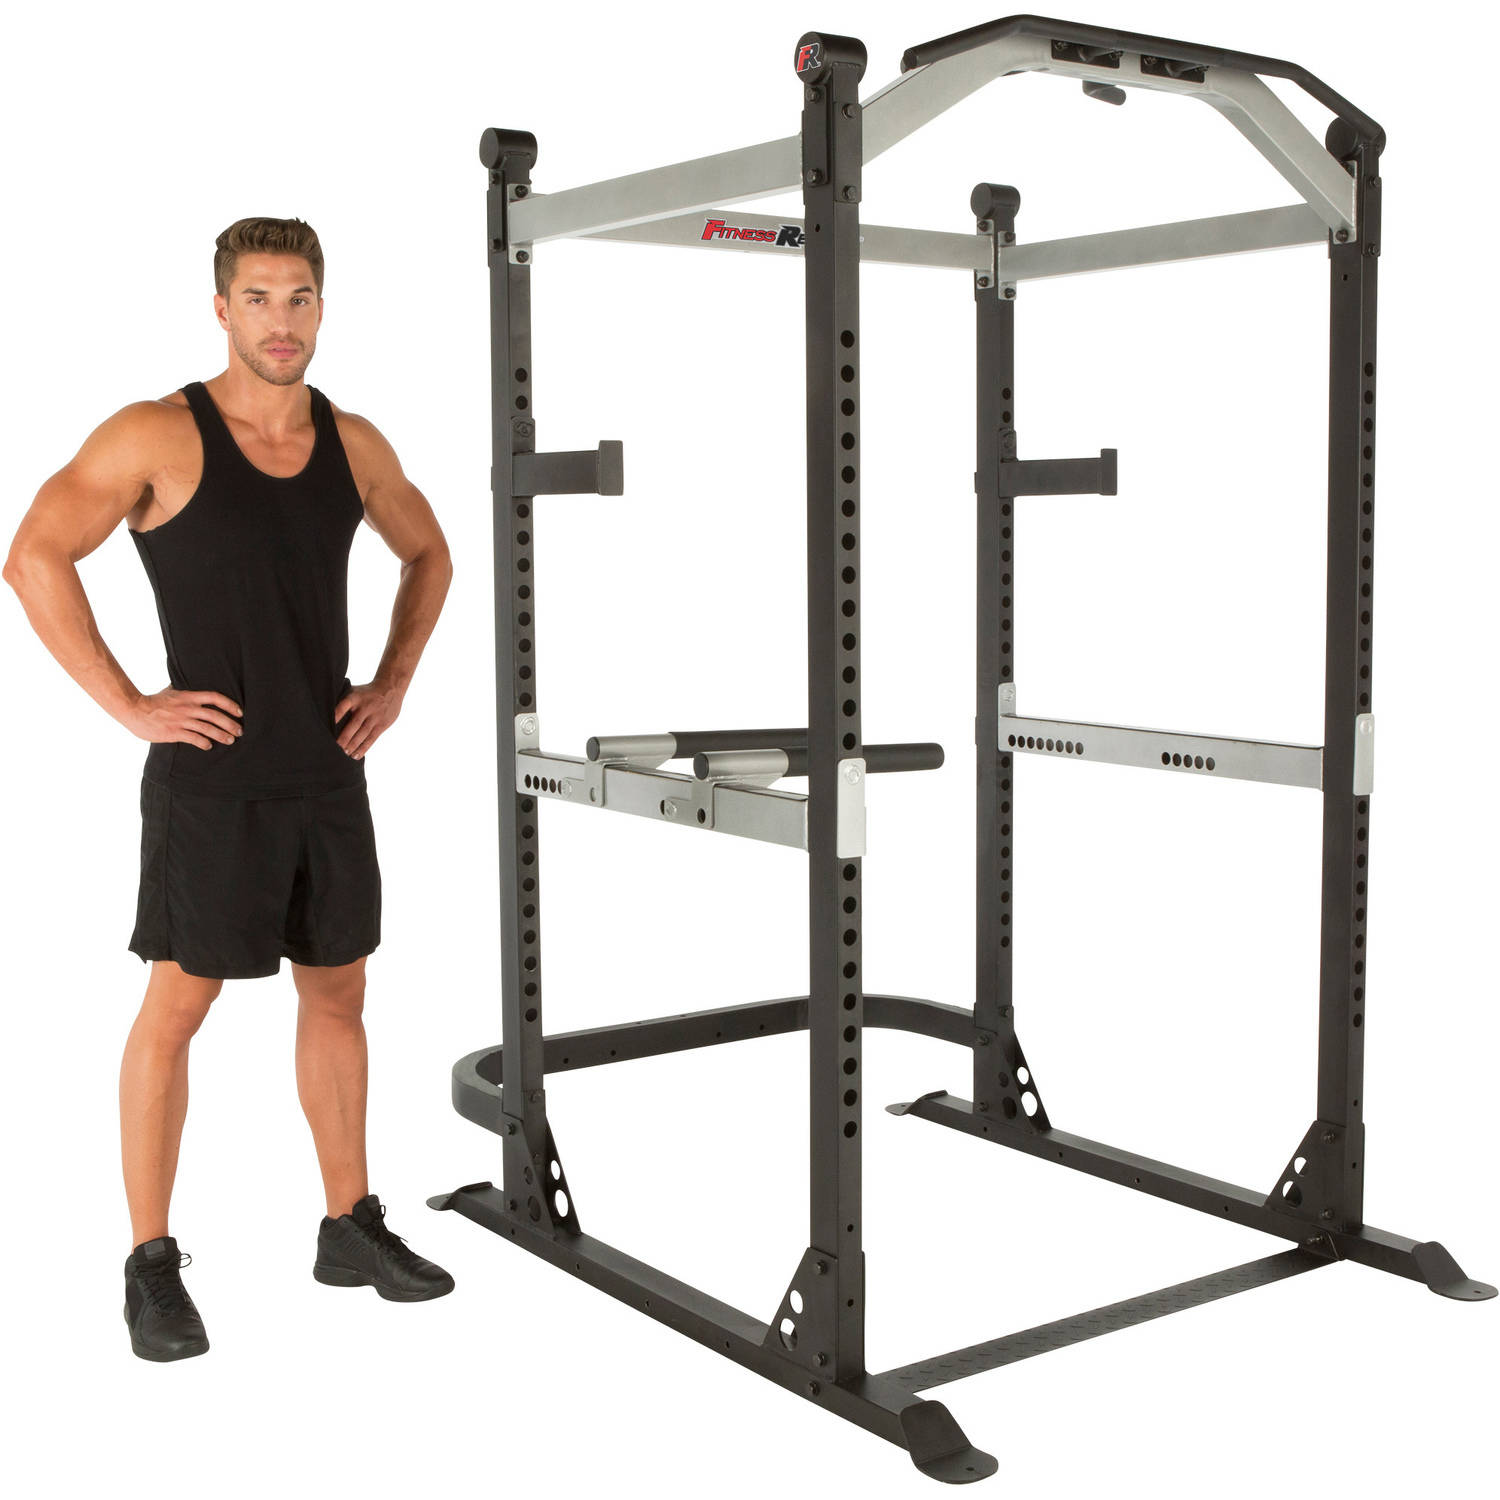 FITNESS REALITY X-Class Light Commercial High-Capacity Olympic Power Cage (Box 1 of 2)